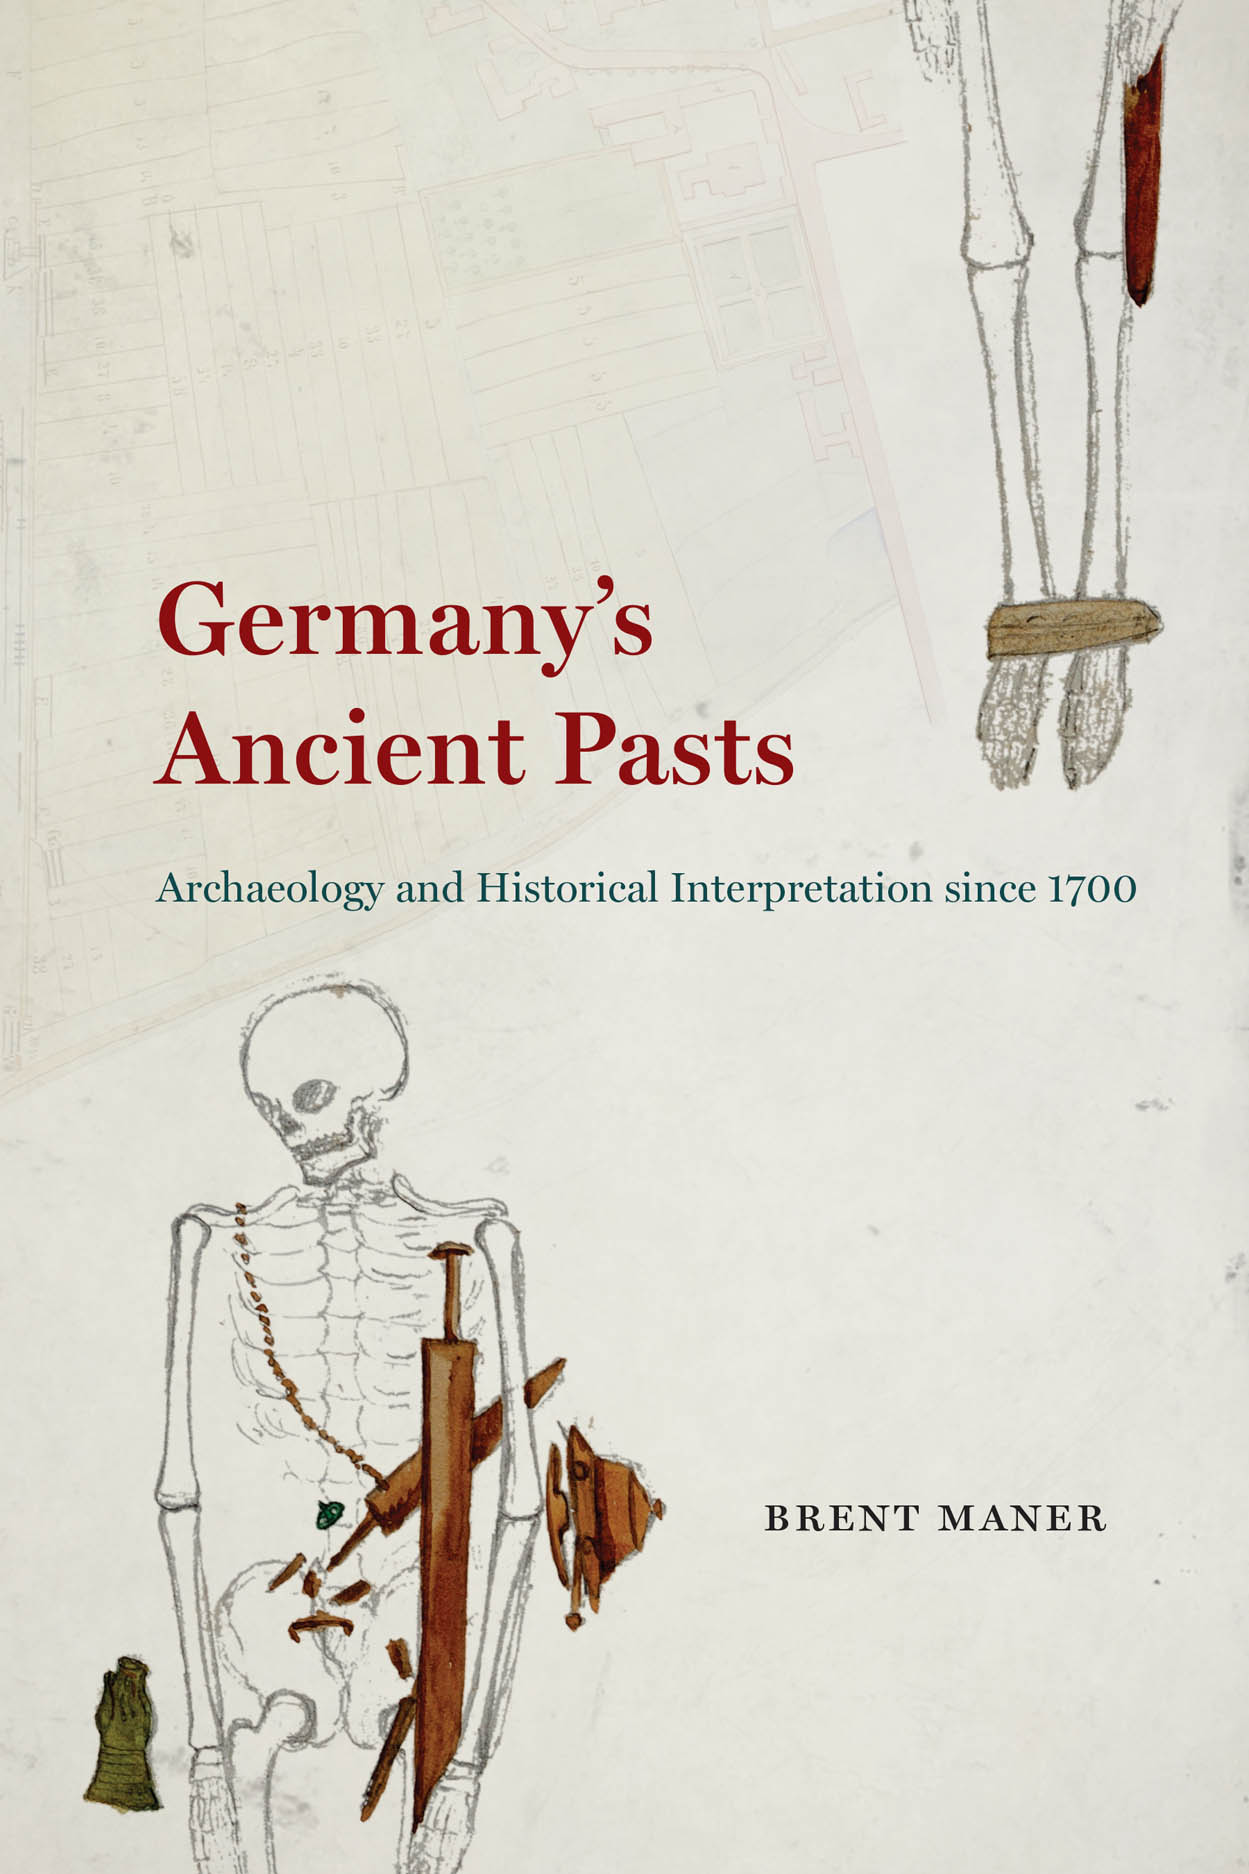 Germany's Ancient Pasts: Archaeology and Historical Interpretation since 1700